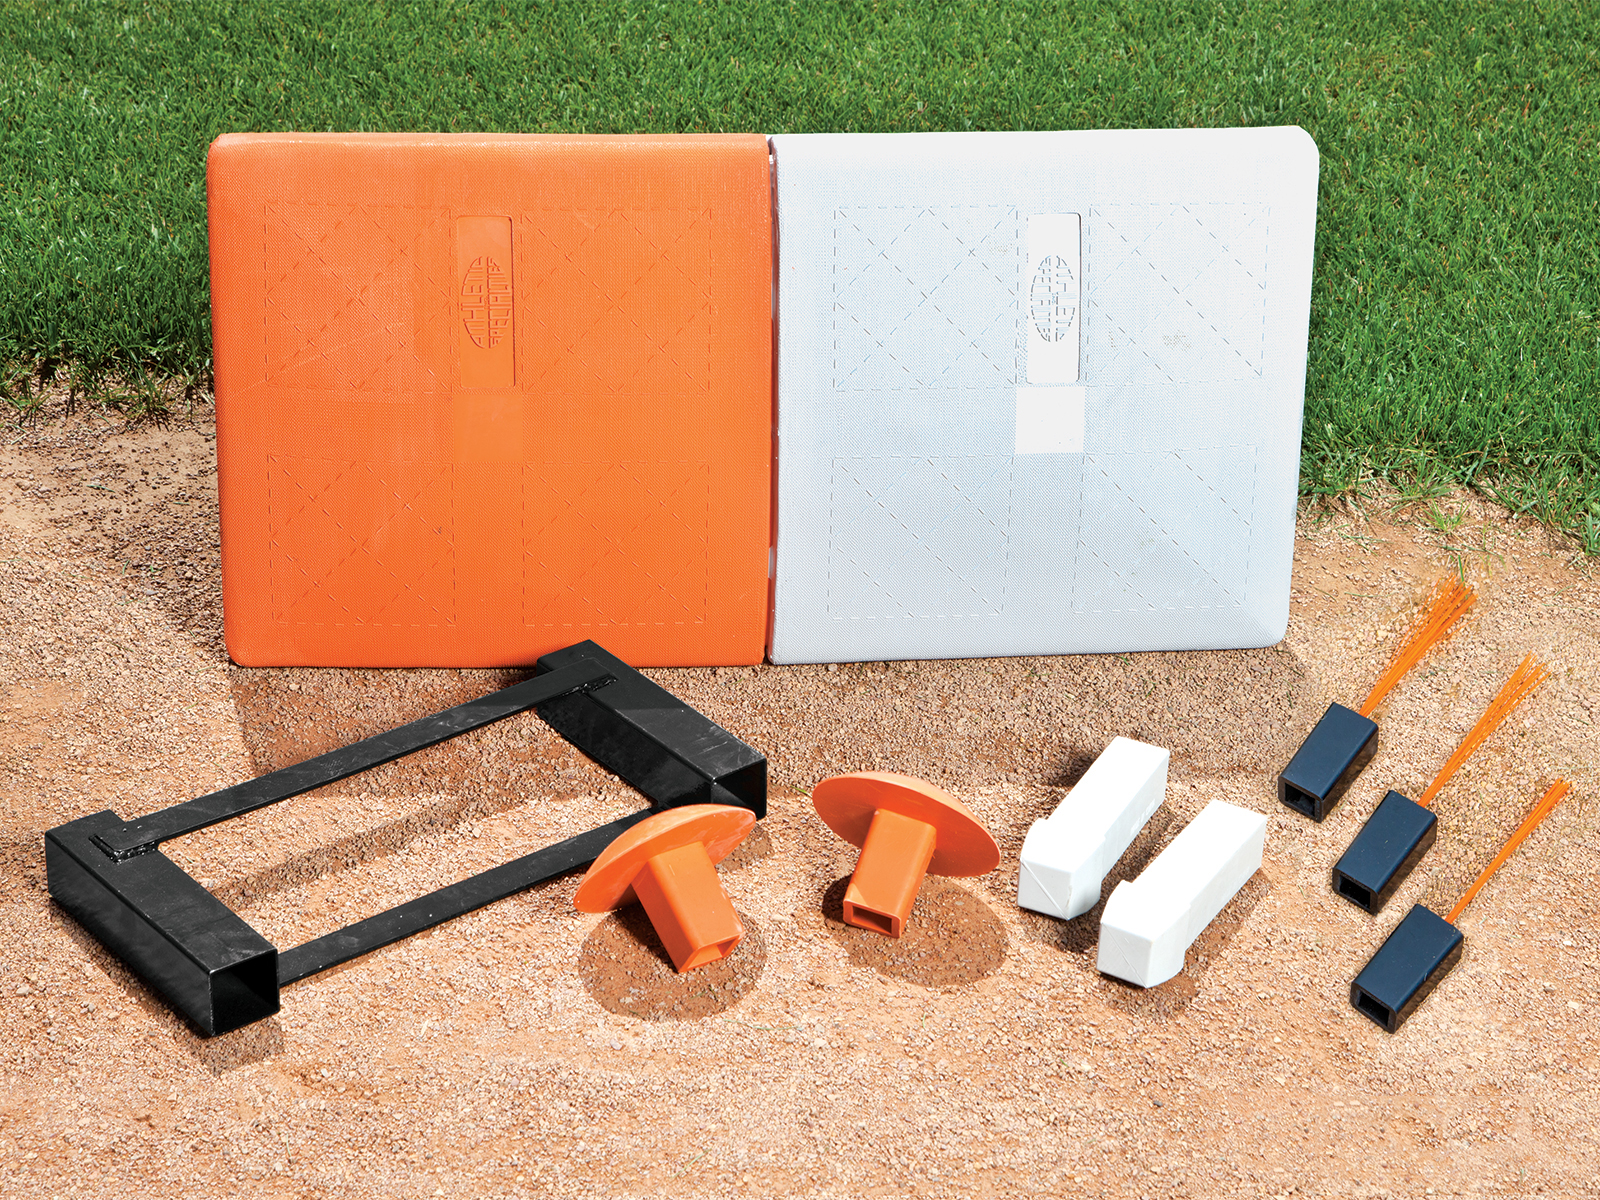 Double Safety First Base - w/ Dual Ground Anchor and Anchor Plugs